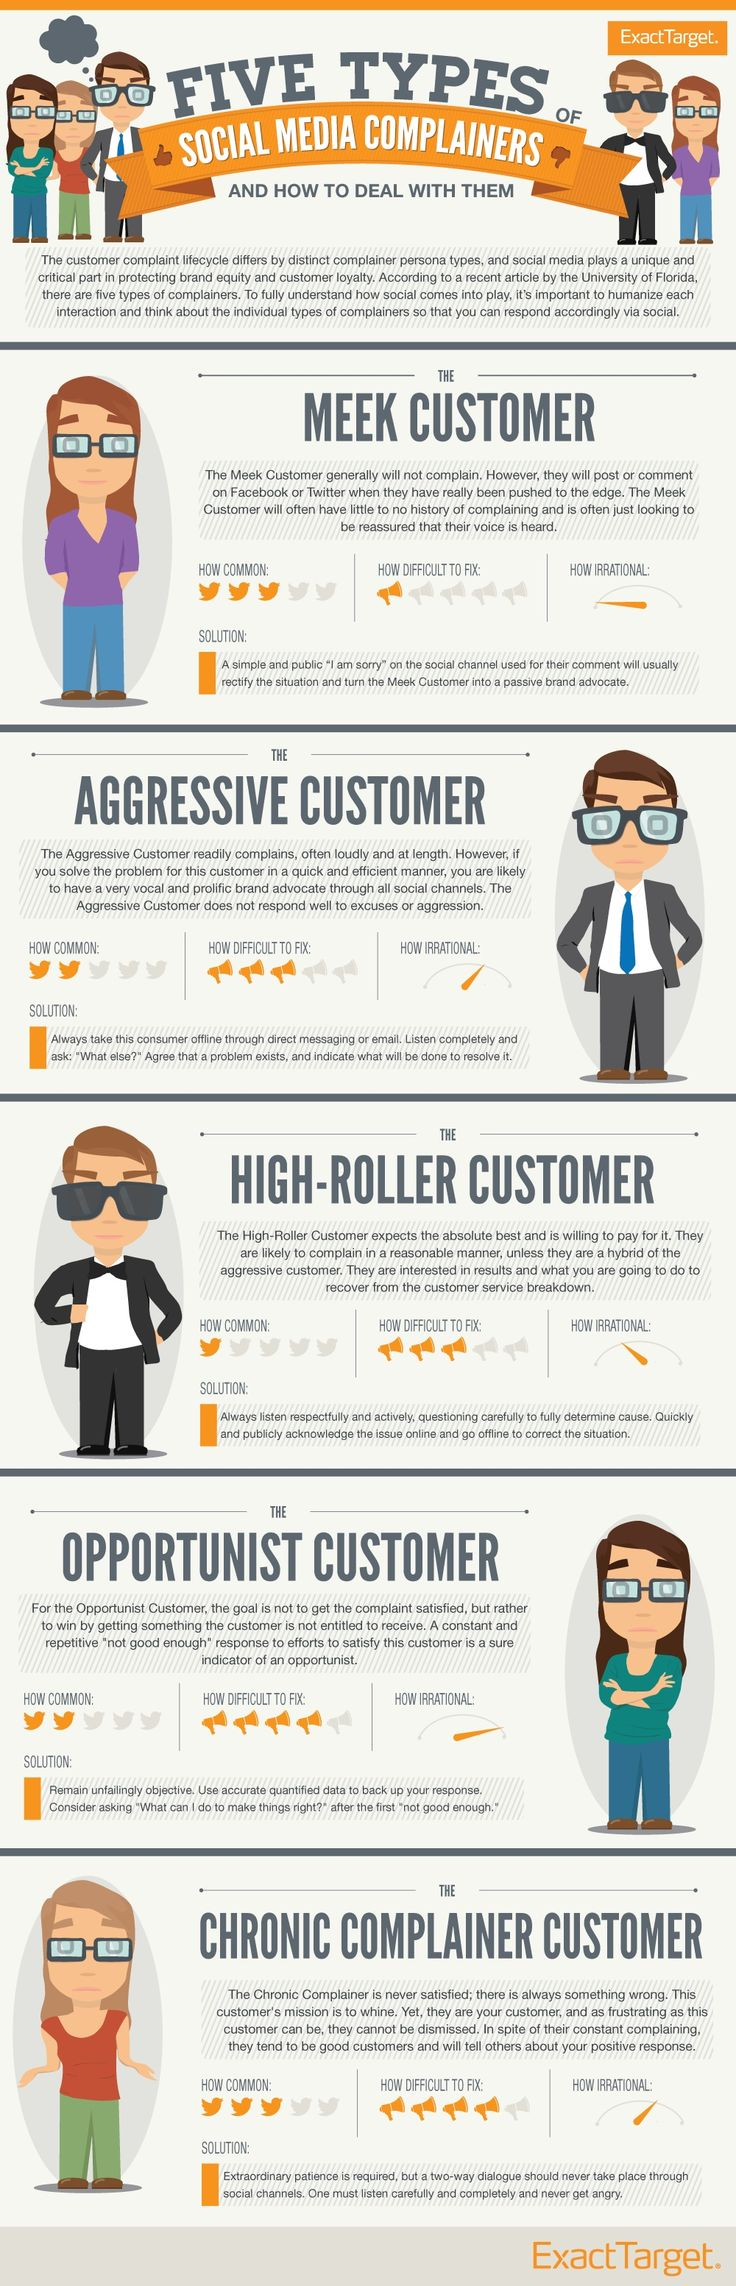 Whether meek or aggressive, customers are more empowered than ever to write reviews, tweet, or post to your Facebook wall, and they expect you to listen and respond.    For many companies, social media is an added responsibility on top of what is an already very long list.        Read more: http://www.marketingprofs.com/articles/2013/10347/five-complainer-customer-personas-and-the-role-of-social-media#ixzz2Oao7VAMc